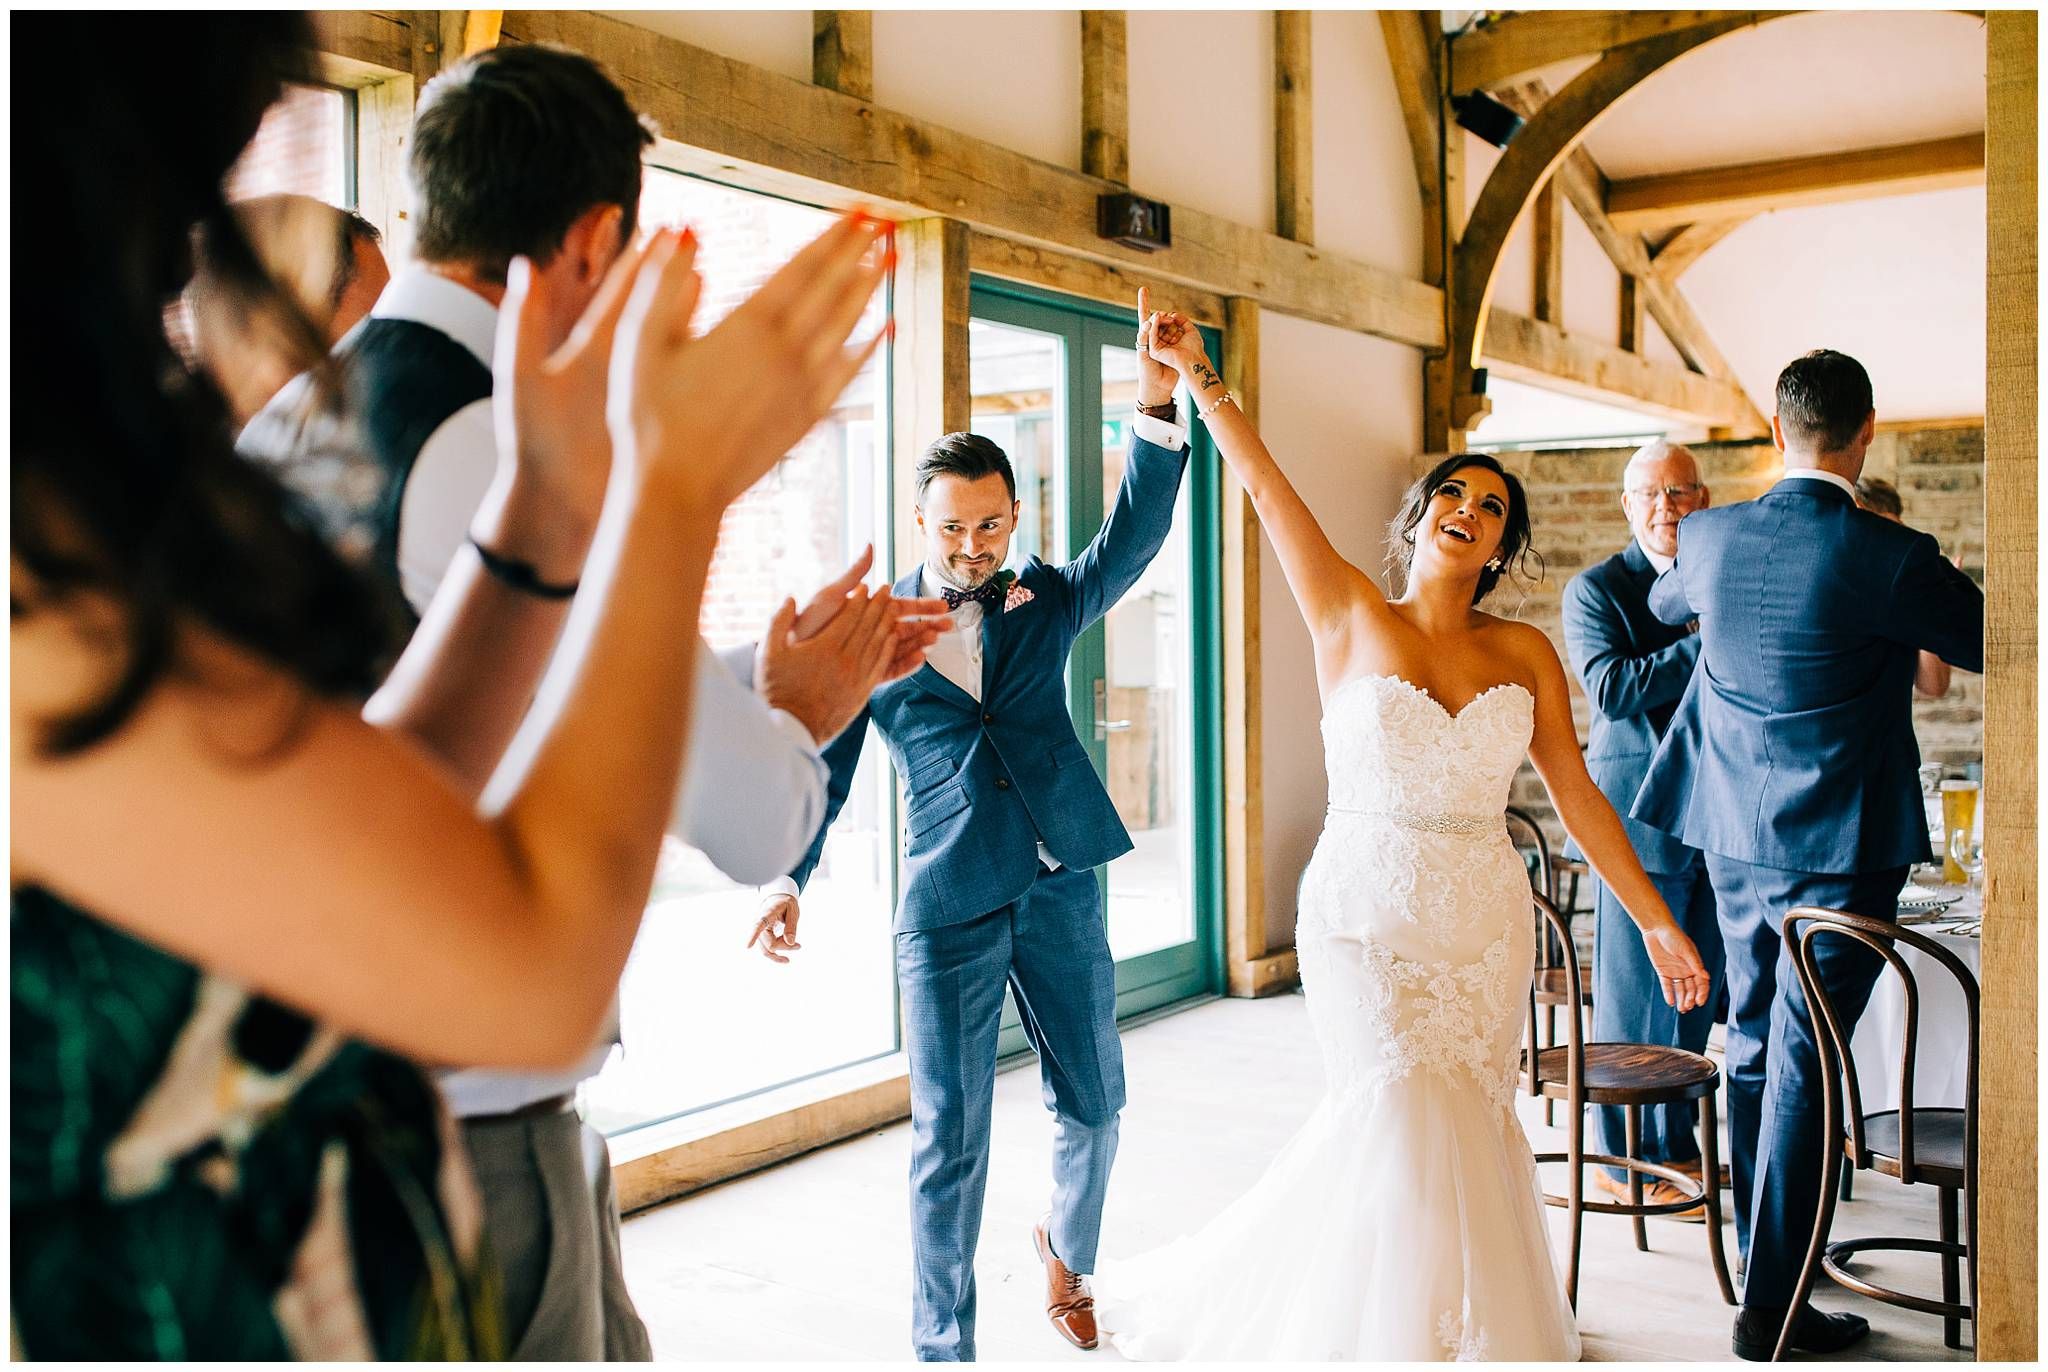 Chic Summer Wedding at Hazel Gap Barn - Nottinghamshire Photographer58.jpg